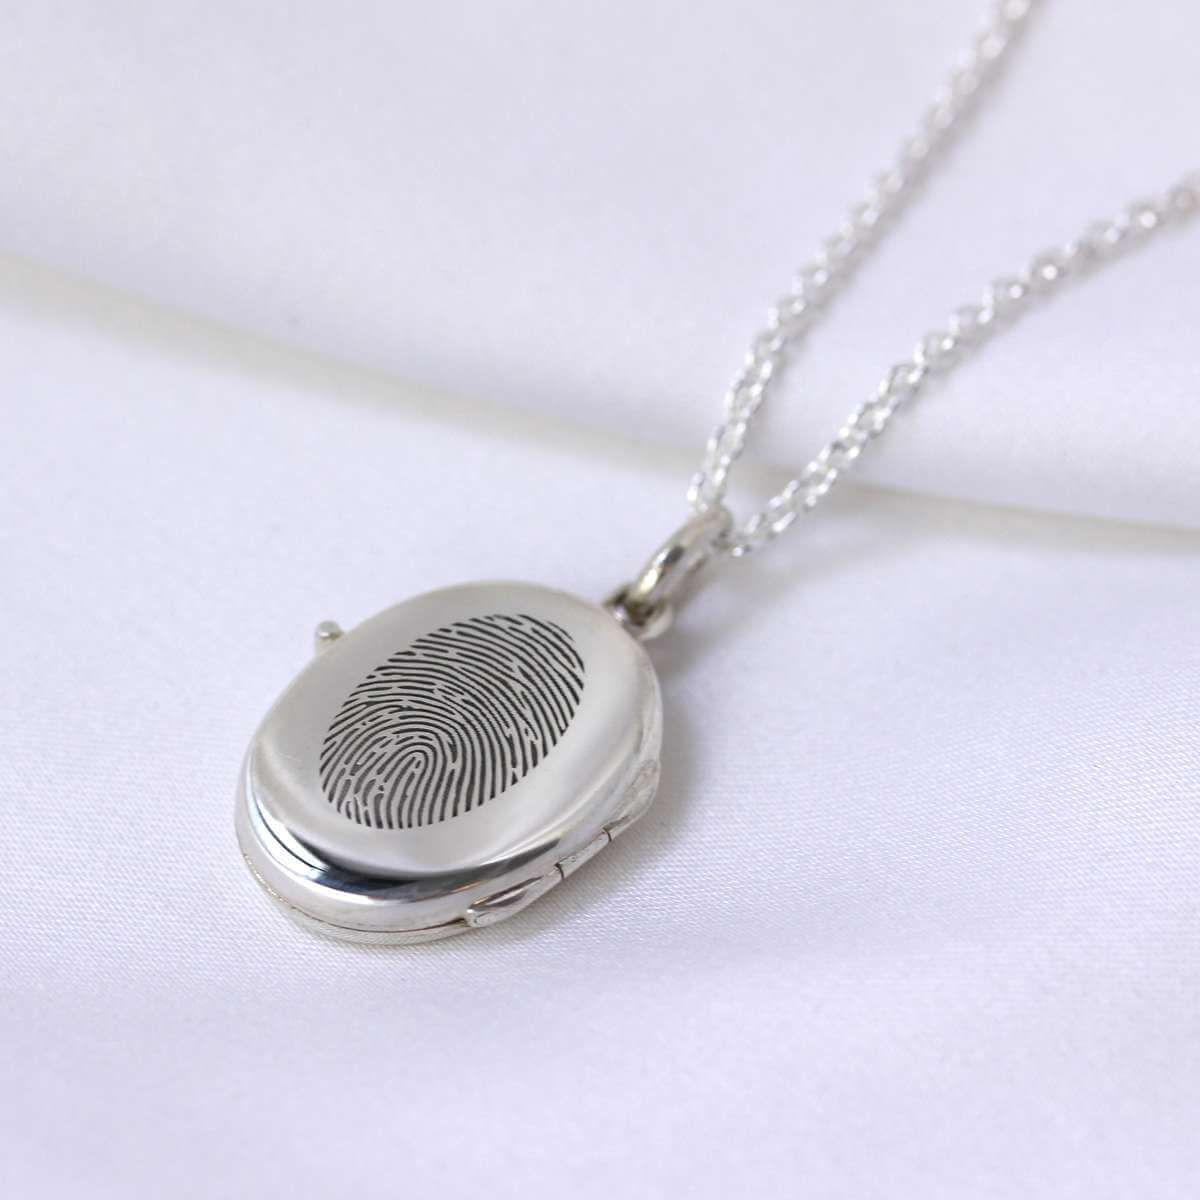 Bespoke Sterling Silver Fingerprint Locket Necklace 16 - 24